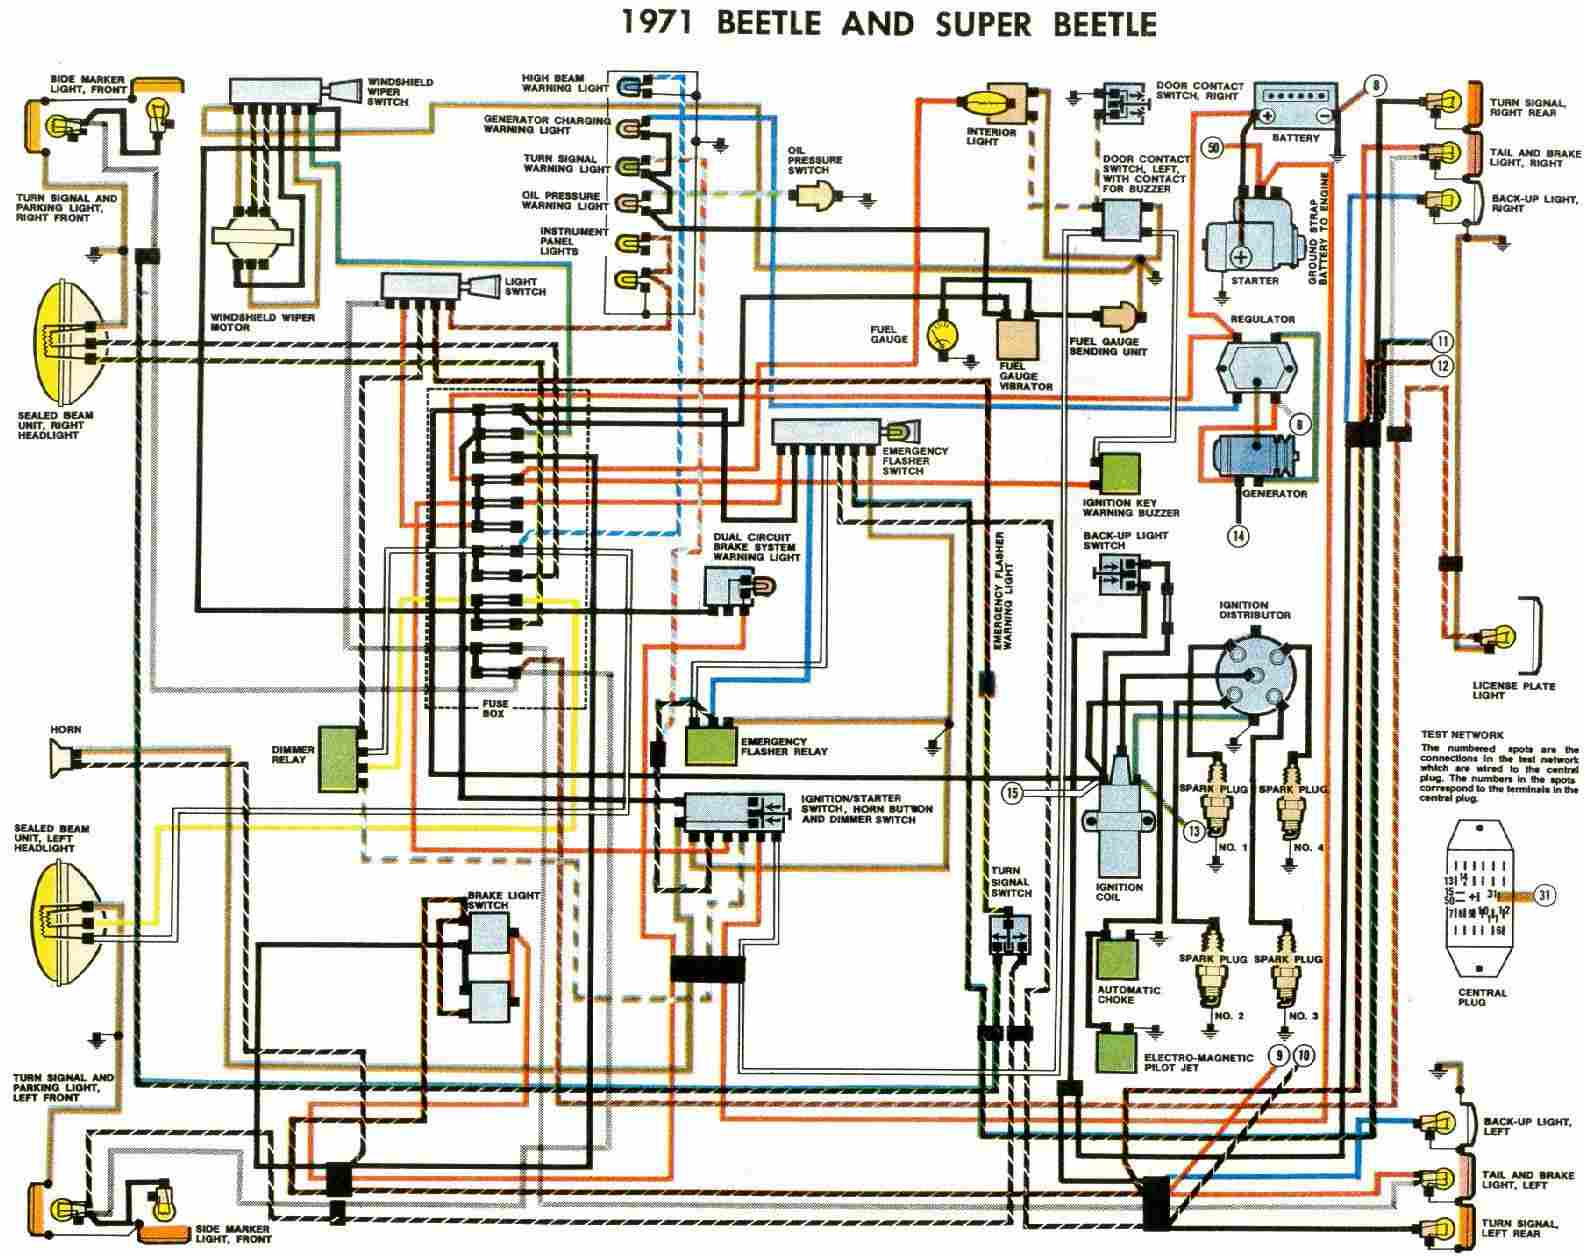 VW+Beetle+and+Super+Beetle+1971+Electrical+Wiring+Diagram southwind motorhome wiring diagram readingrat net wiring diagram 1987 vw cabriolet at bayanpartner.co